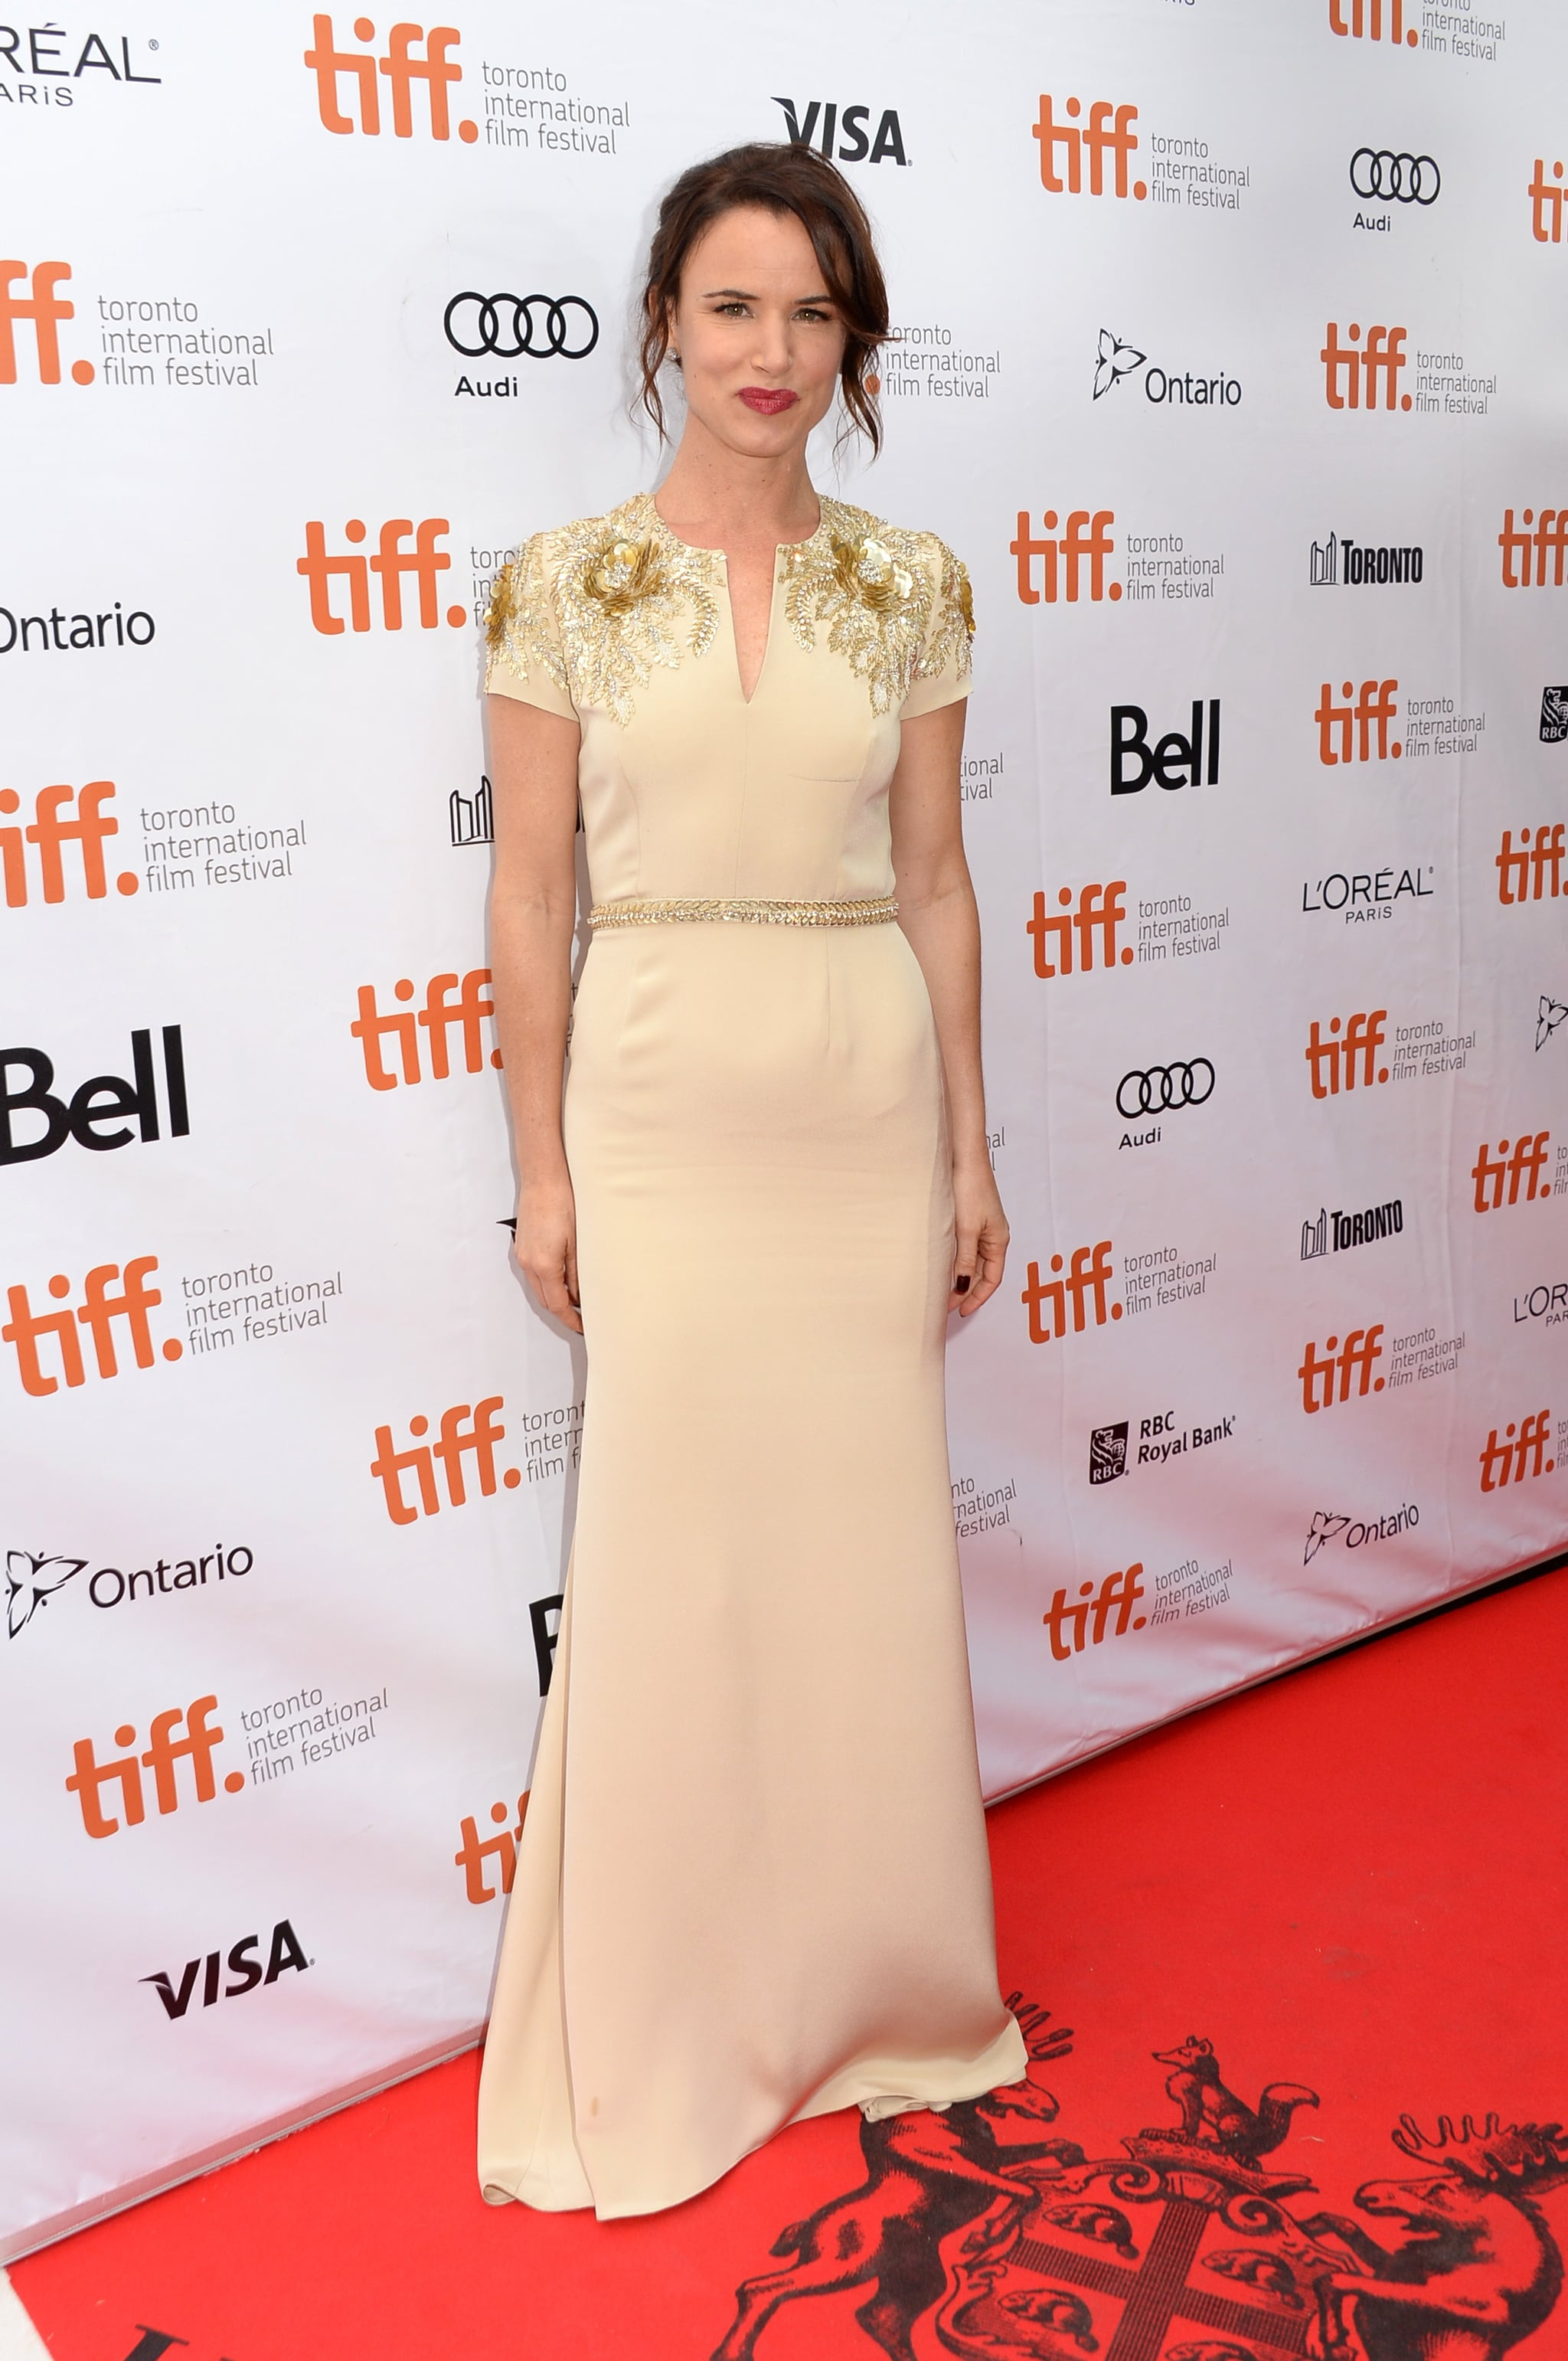 Juliette Lewis made an elegant appearance at the August: Osage County premiere.